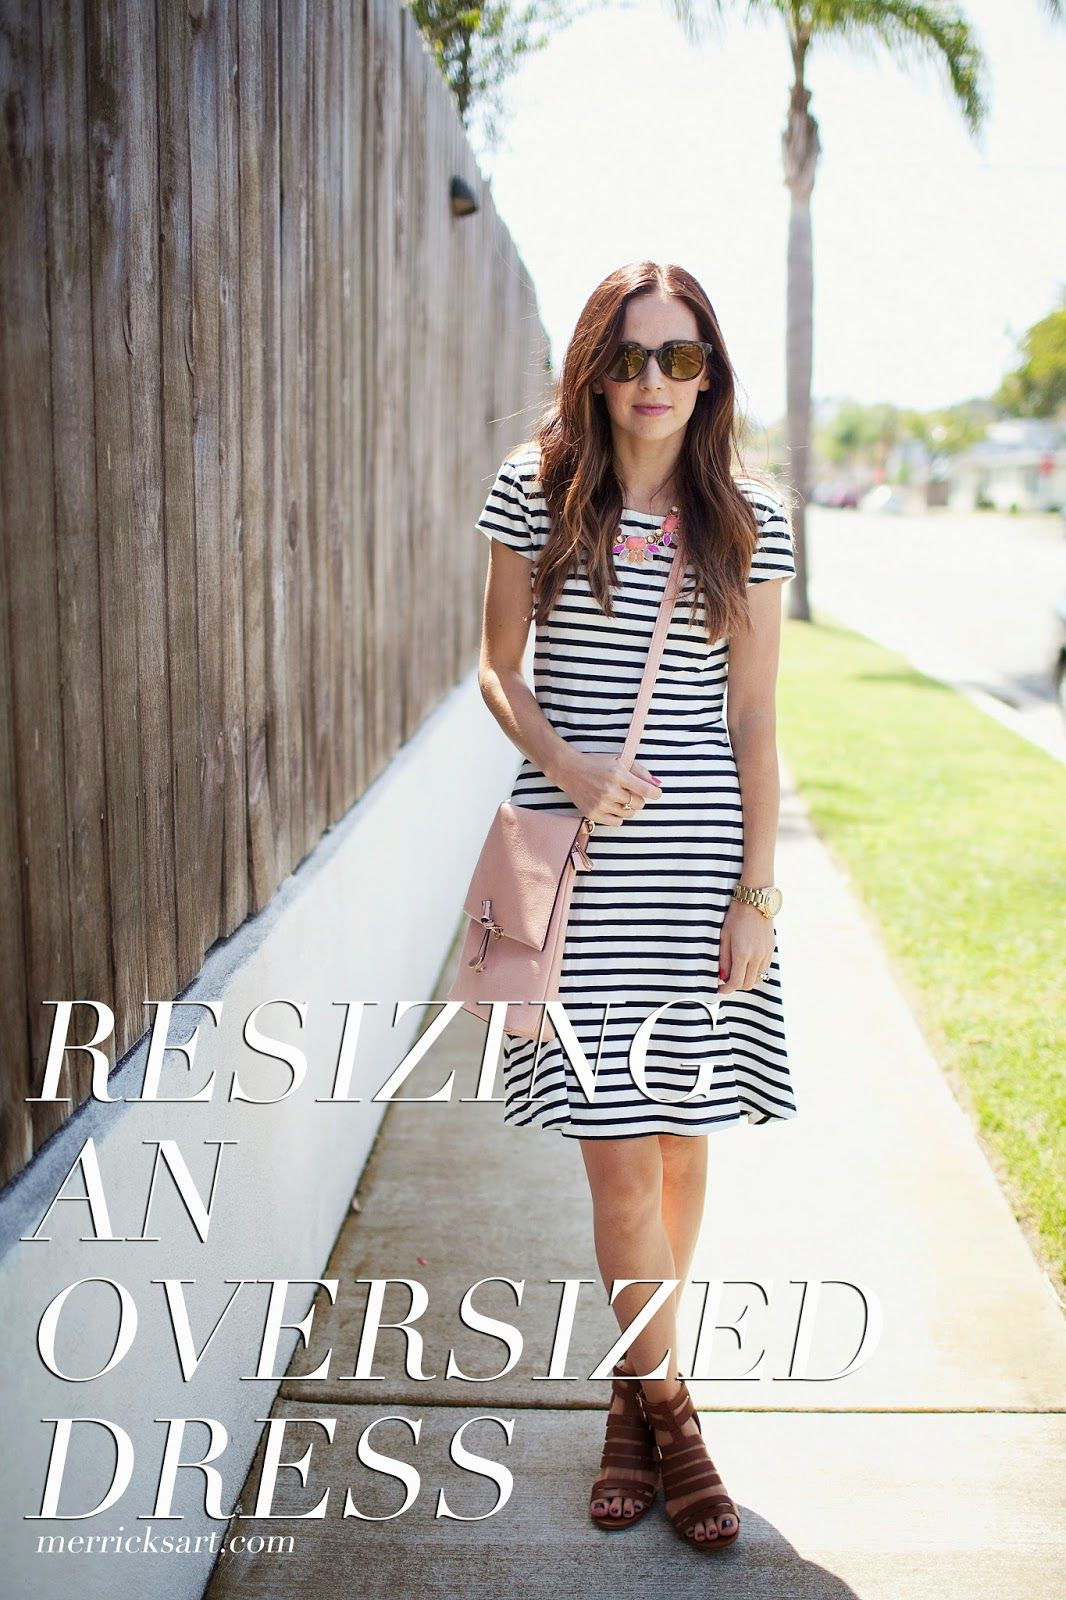 How To Resize An Oversized Dress Easily How To Resize An Oversized Dress Easily new pictures